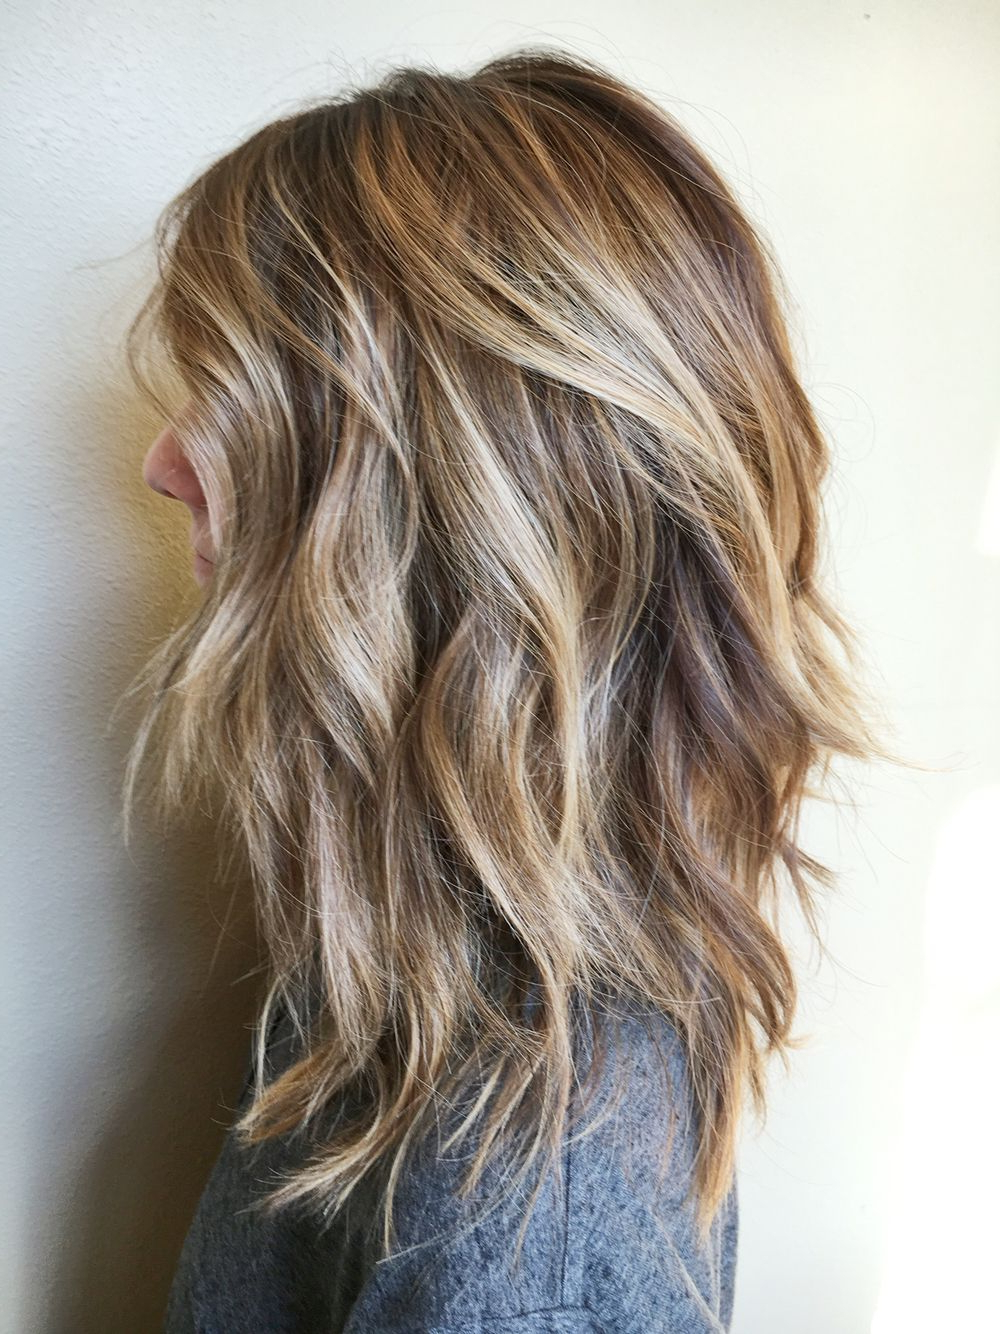 40 Amazing Medium Length Hairstyles & Shoulder Length Haircuts Intended For Short And Long Layer Hairstyles (View 3 of 20)